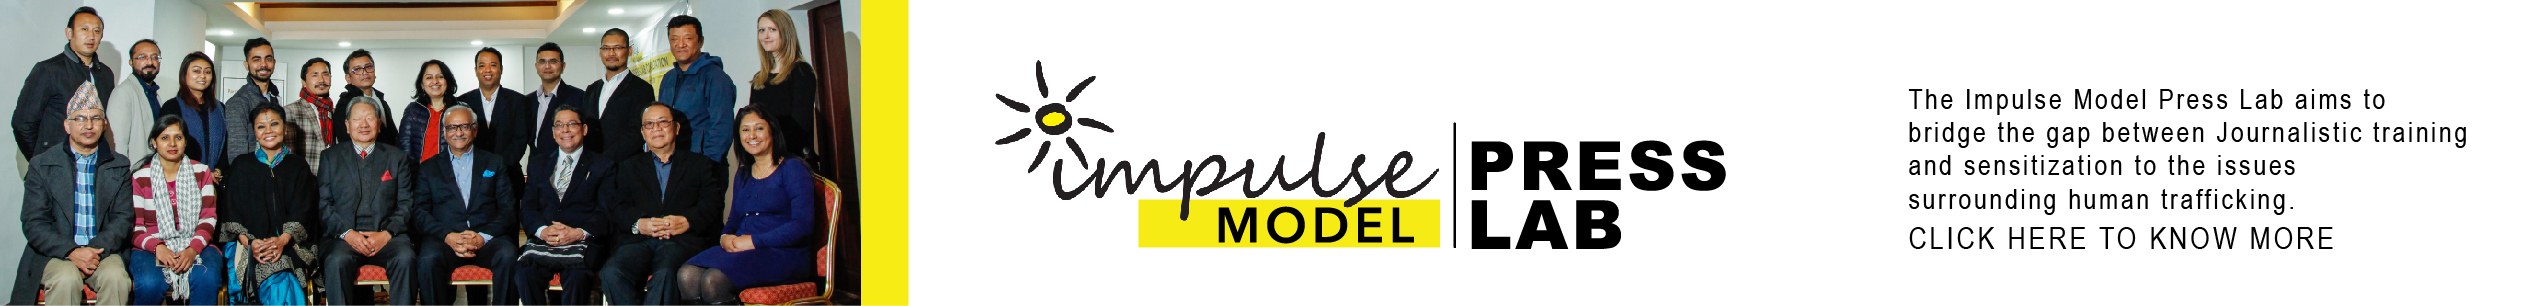 About Impulse Model Press Lab